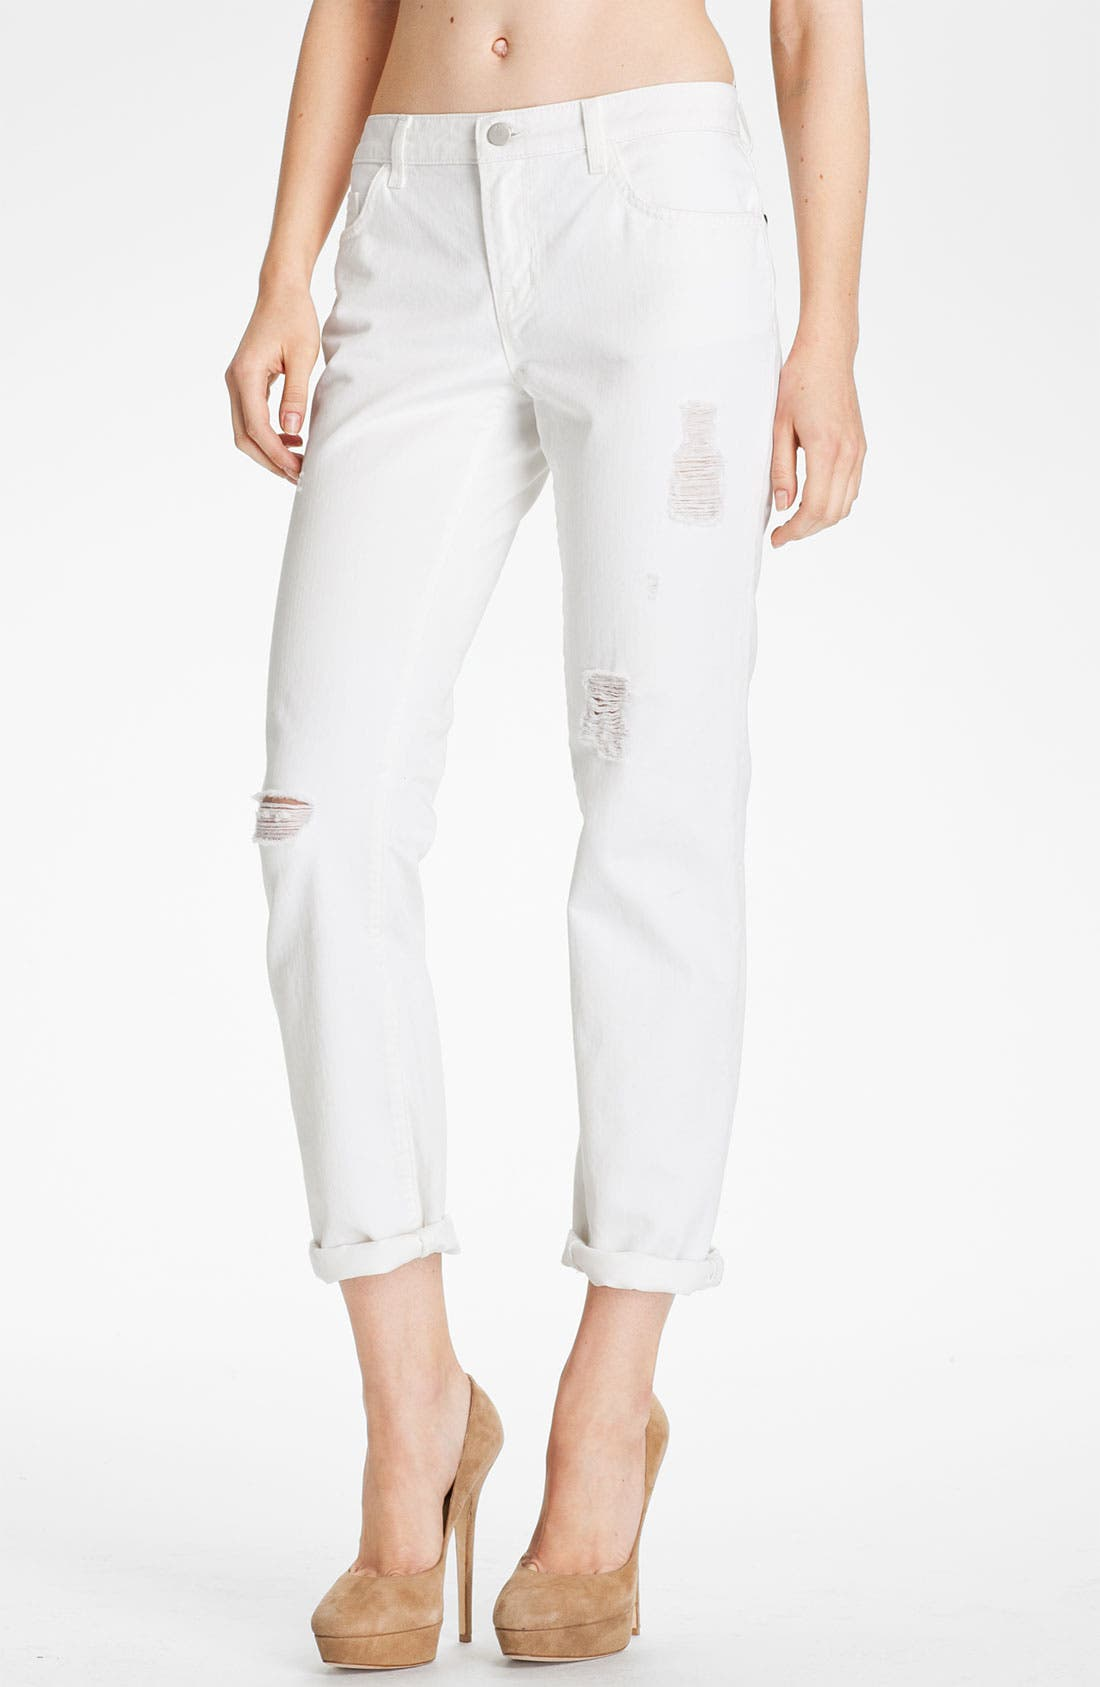 Main Image - J Brand 'Aidan' Distressed Boyfriend Fit Jeans (White Destructed)